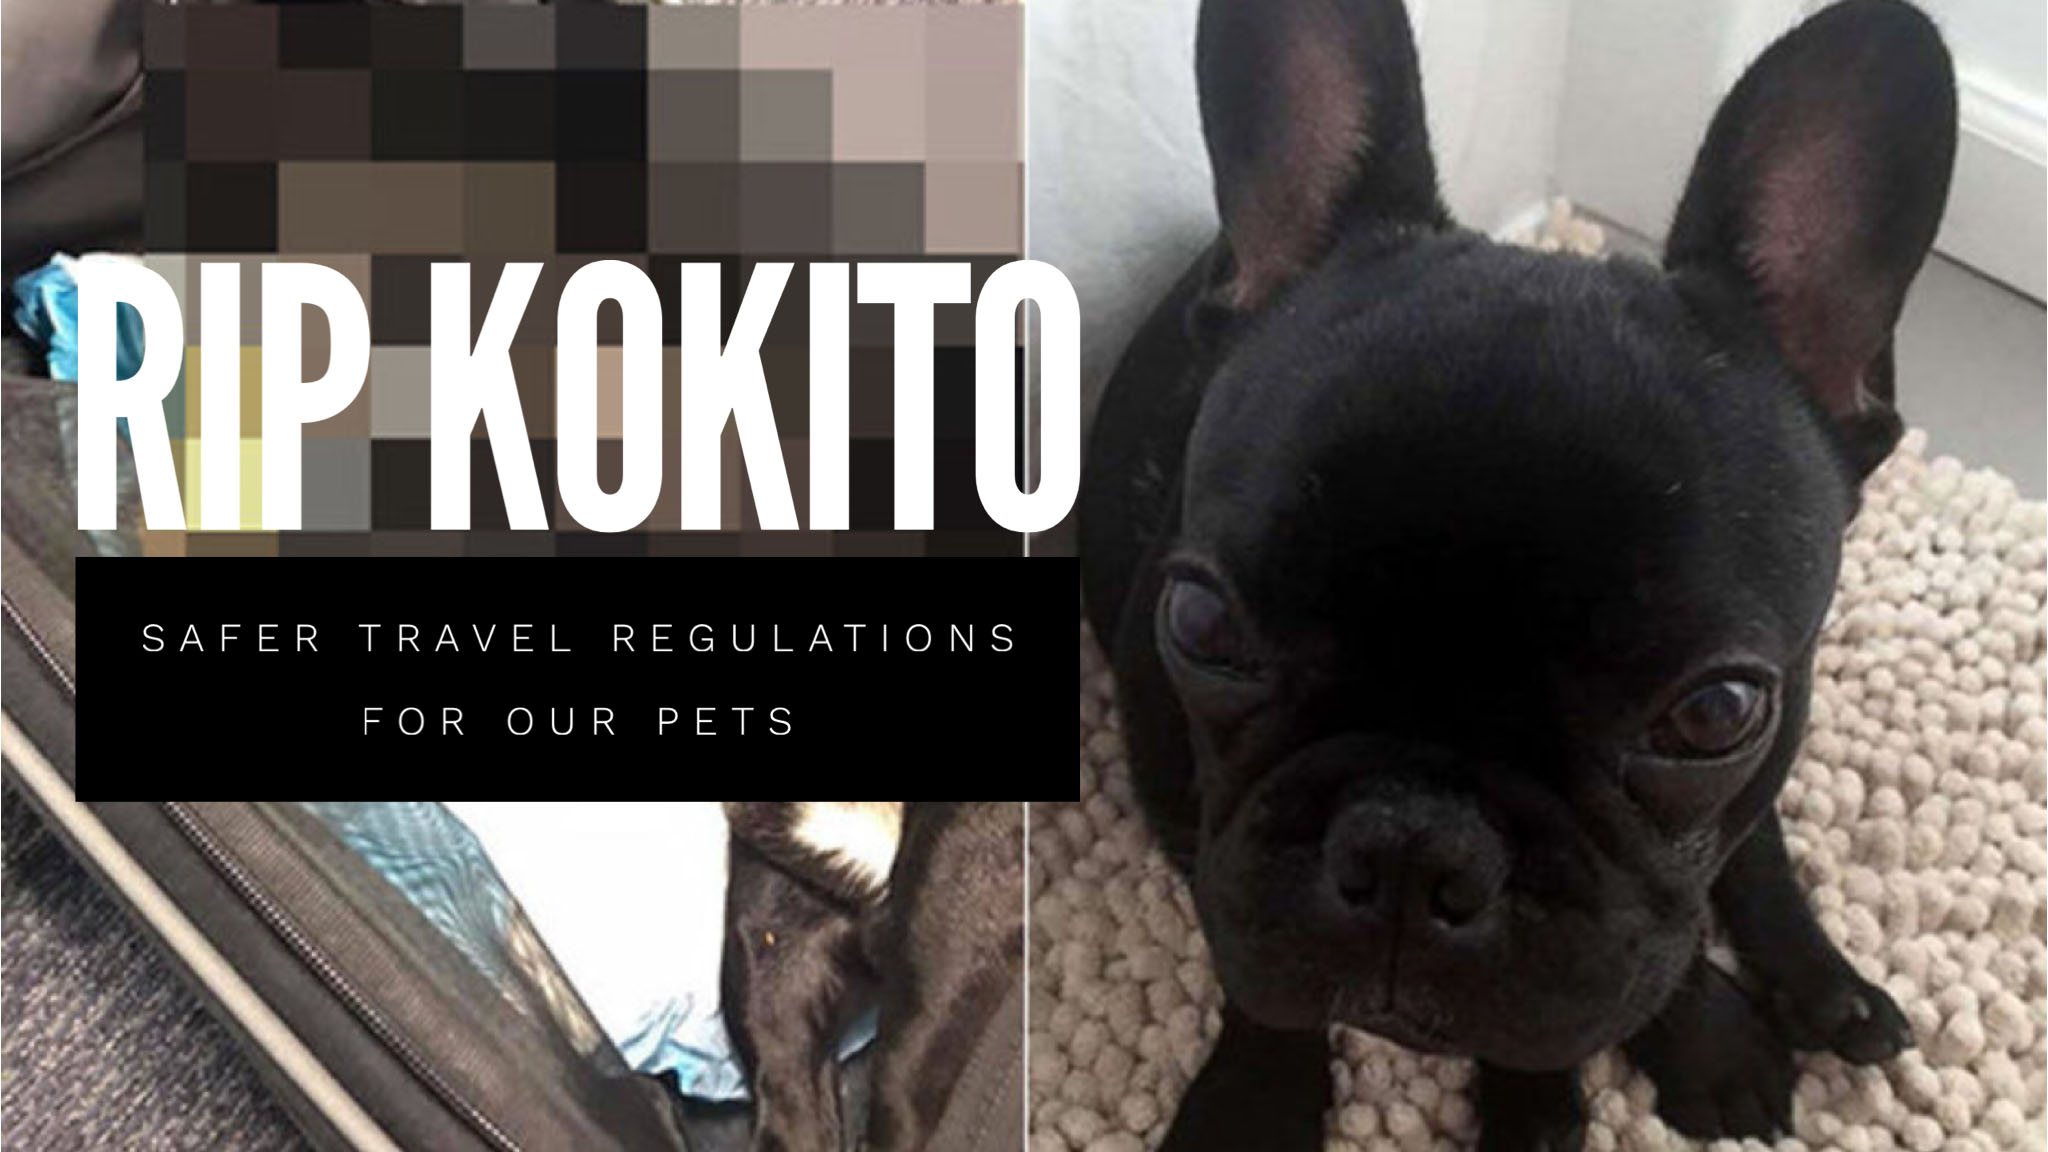 Rip Kokito Safer Travel Regulations For Our Pets Attajaan If you are unsure, please consult the website of the uk. rip kokito safer travel regulations